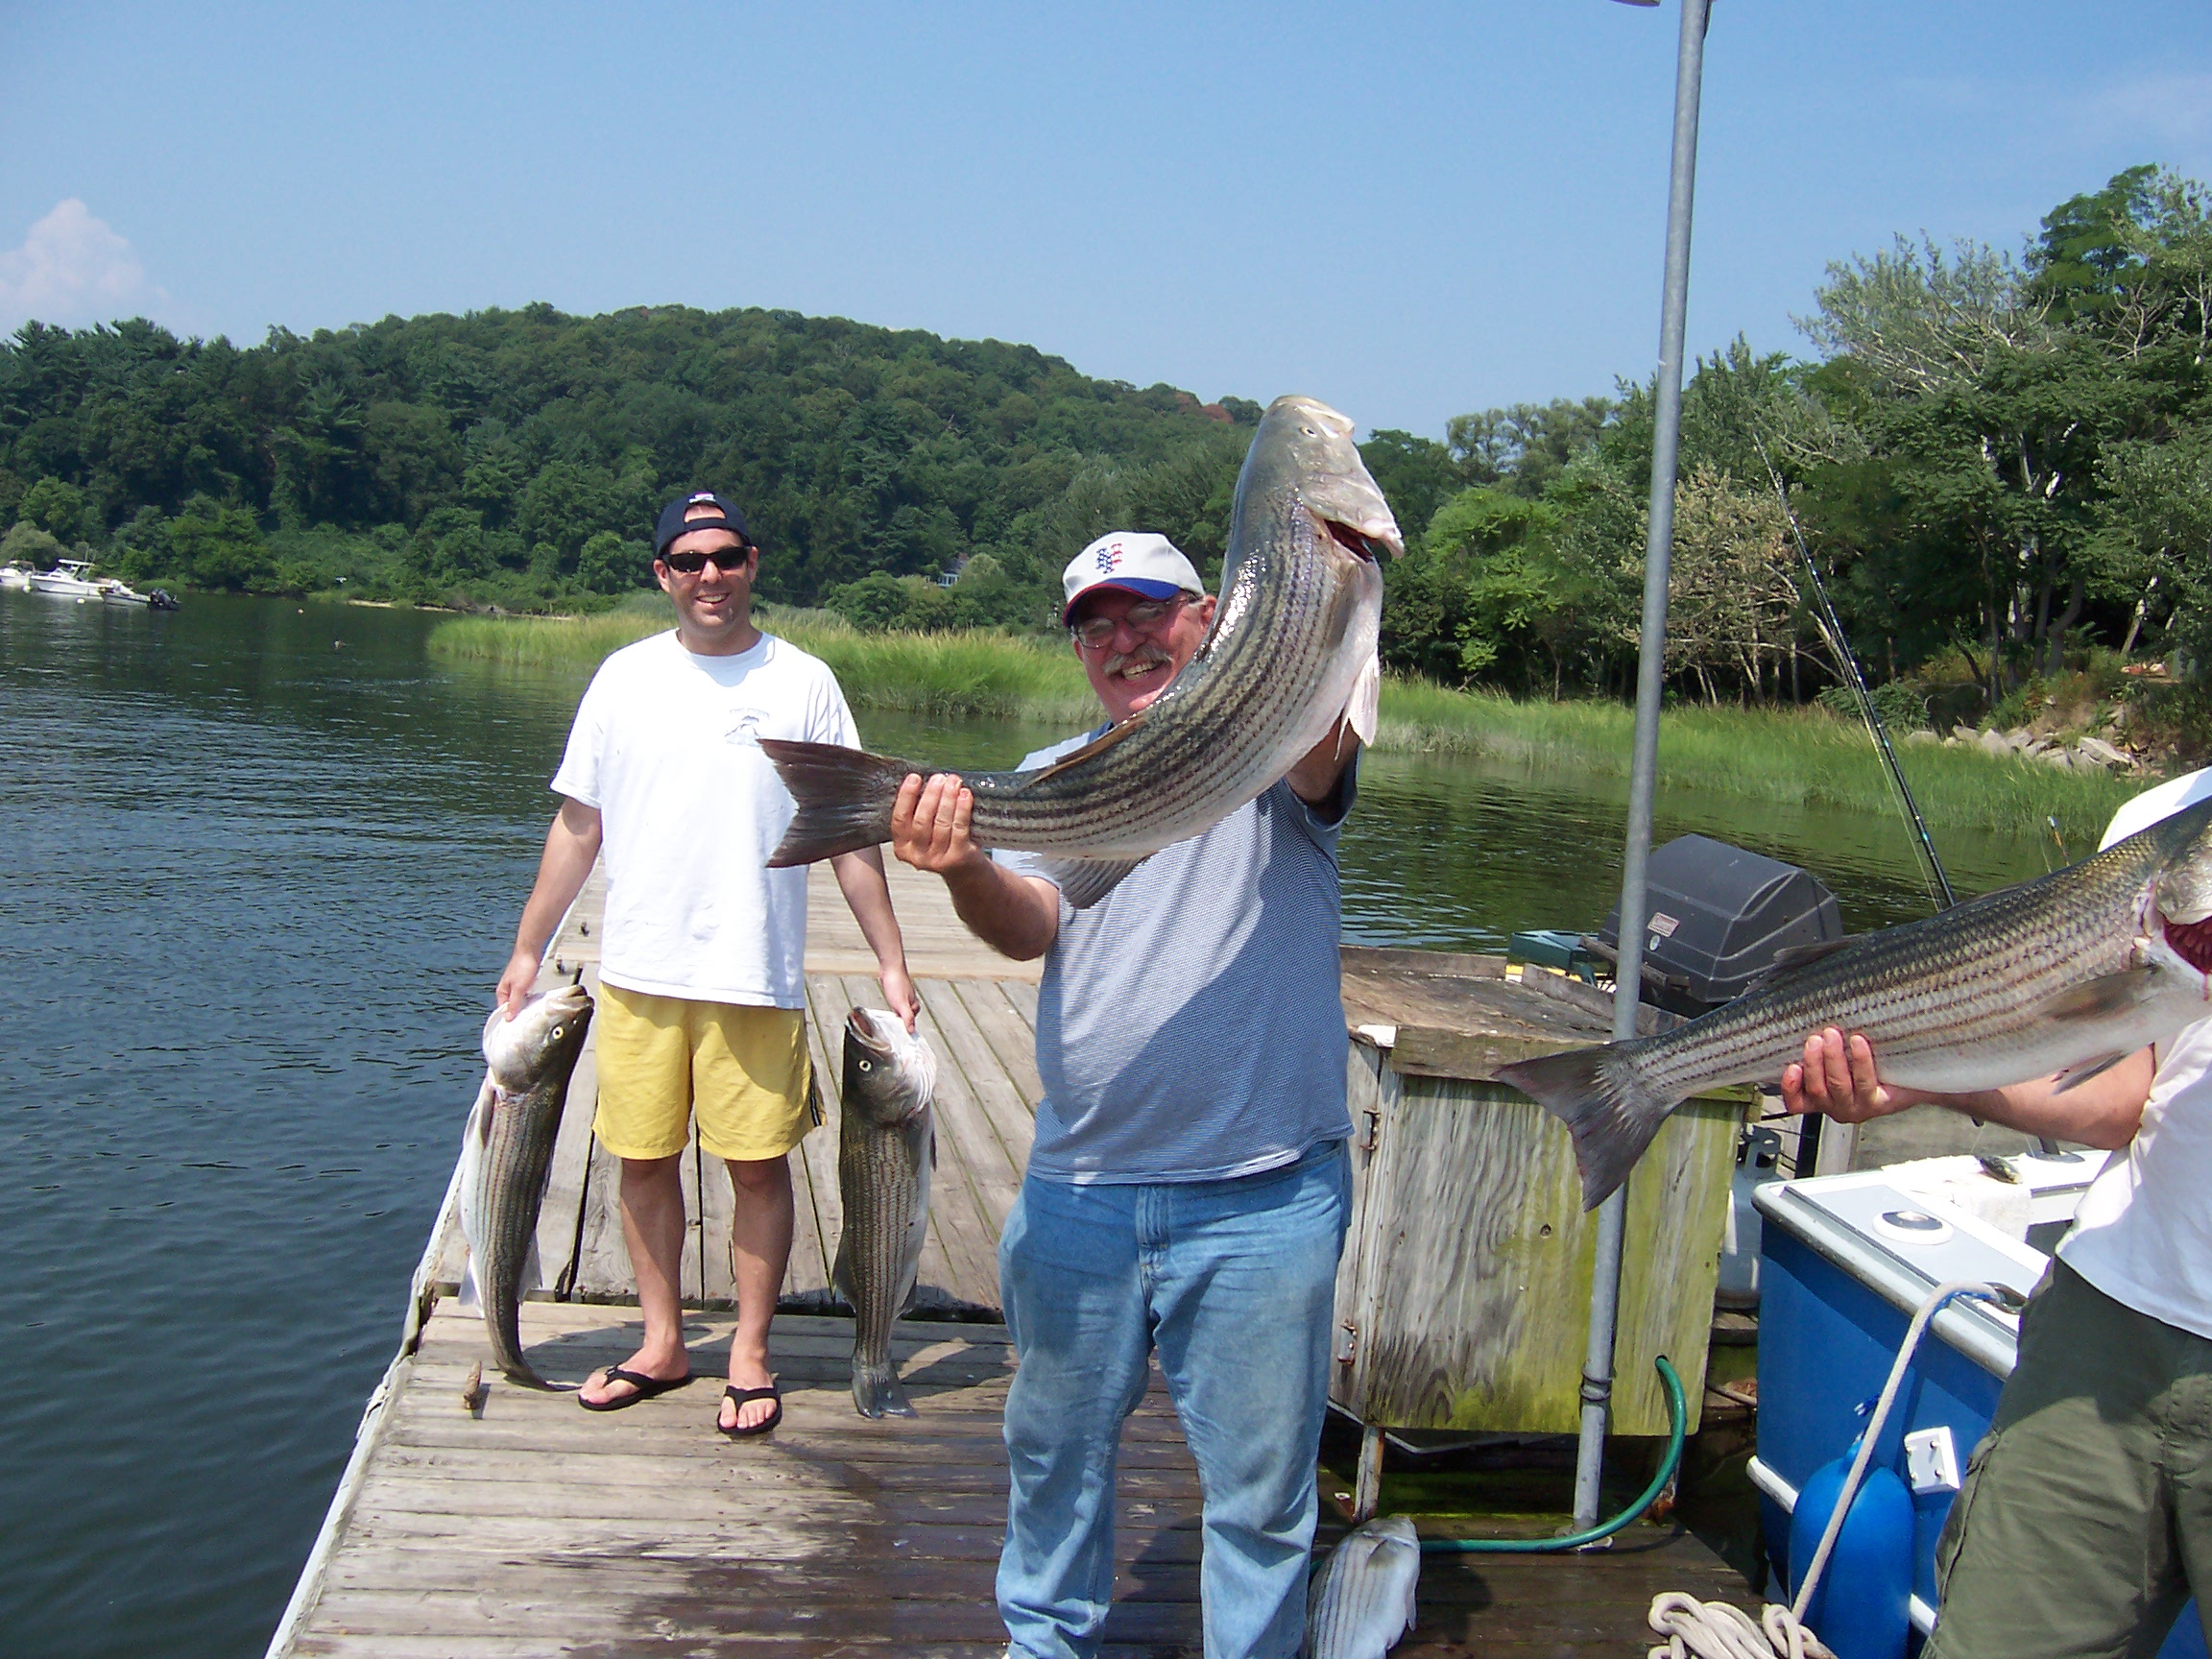 Fishing charters north shore long island sound north for Fishing on long island